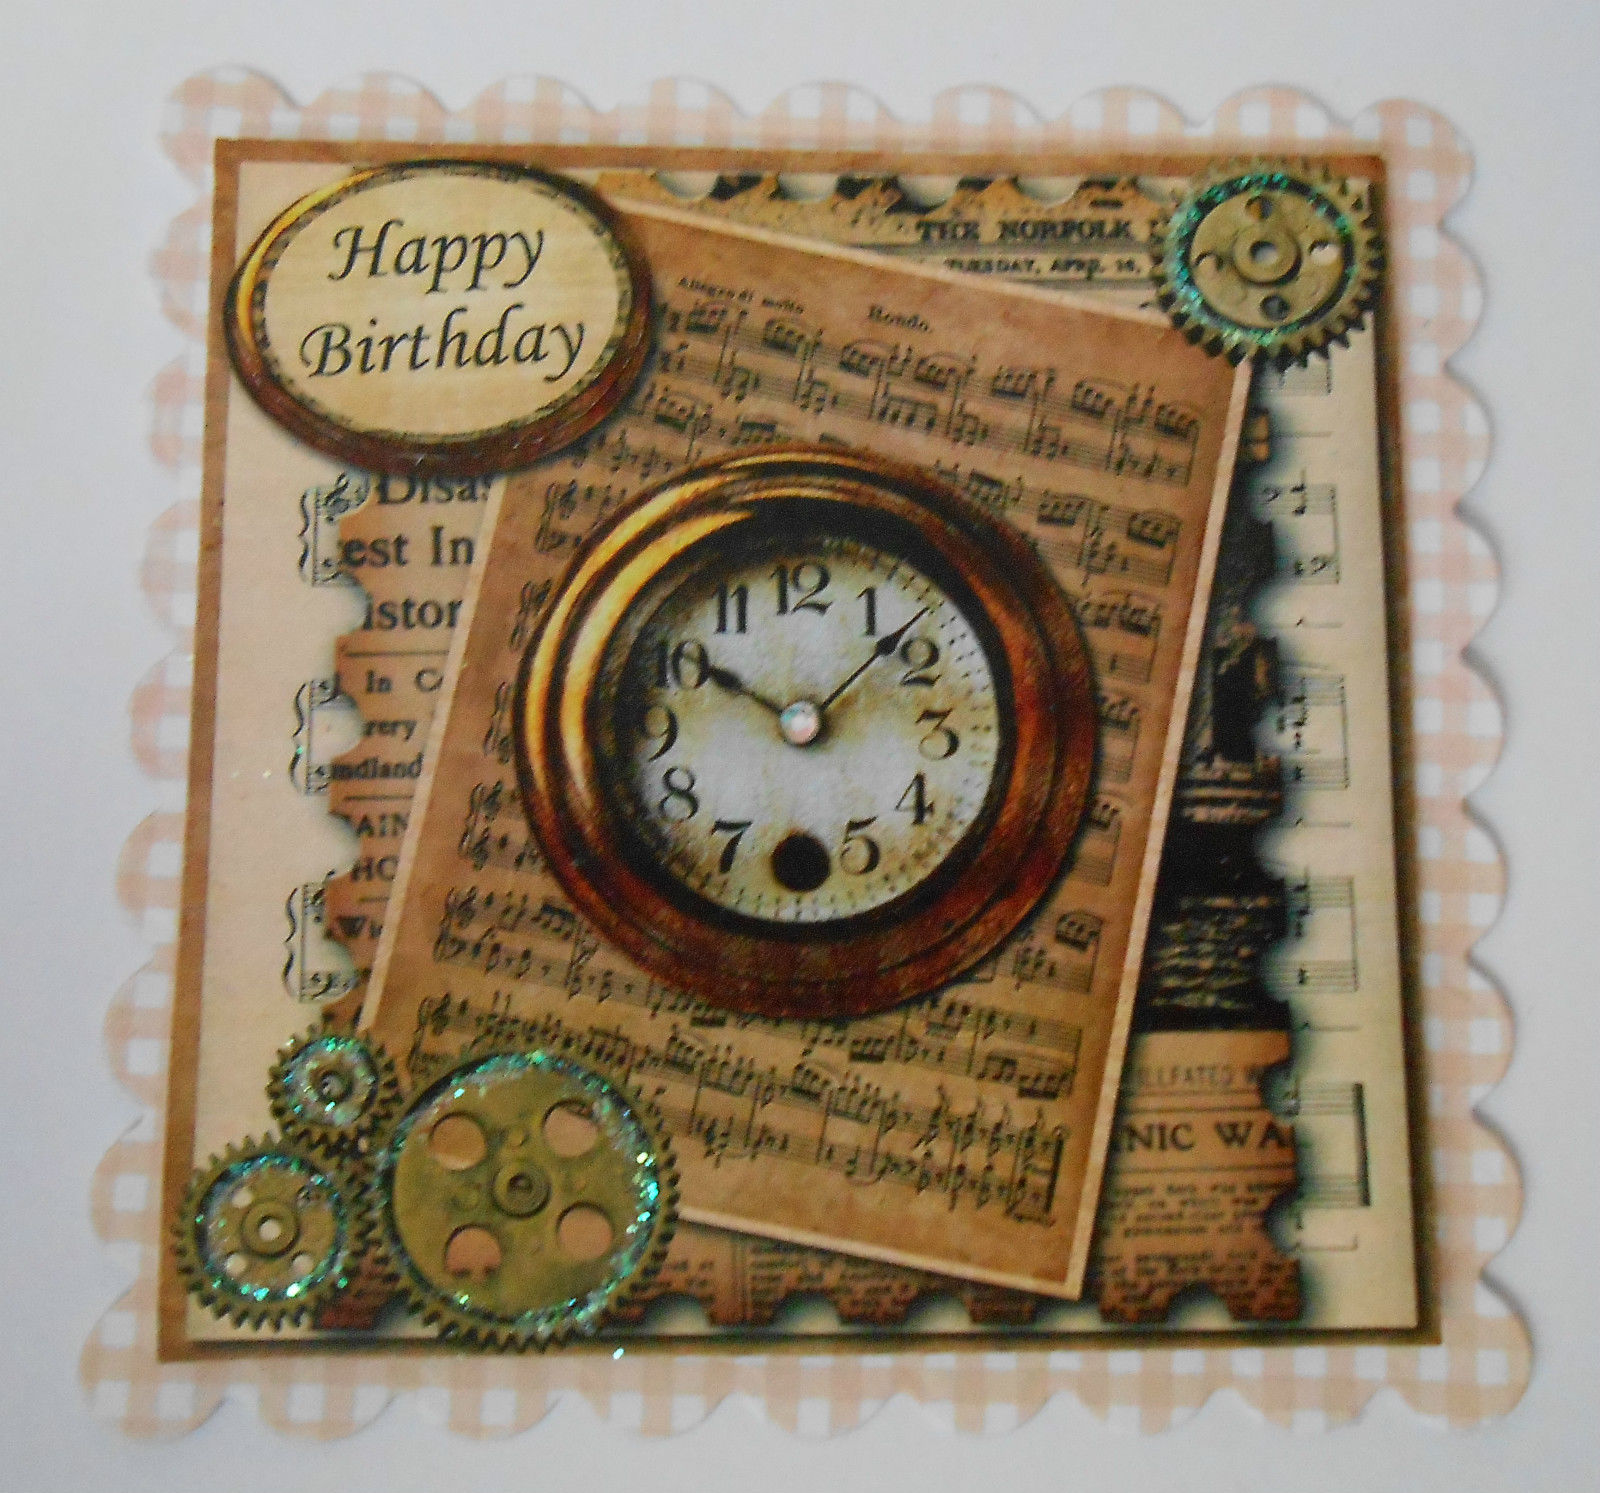 PK 2 STEAMPUNK CLOCKS HAPPY BIRTHDAY EMBELLISHMENT TOPPERS FOR C